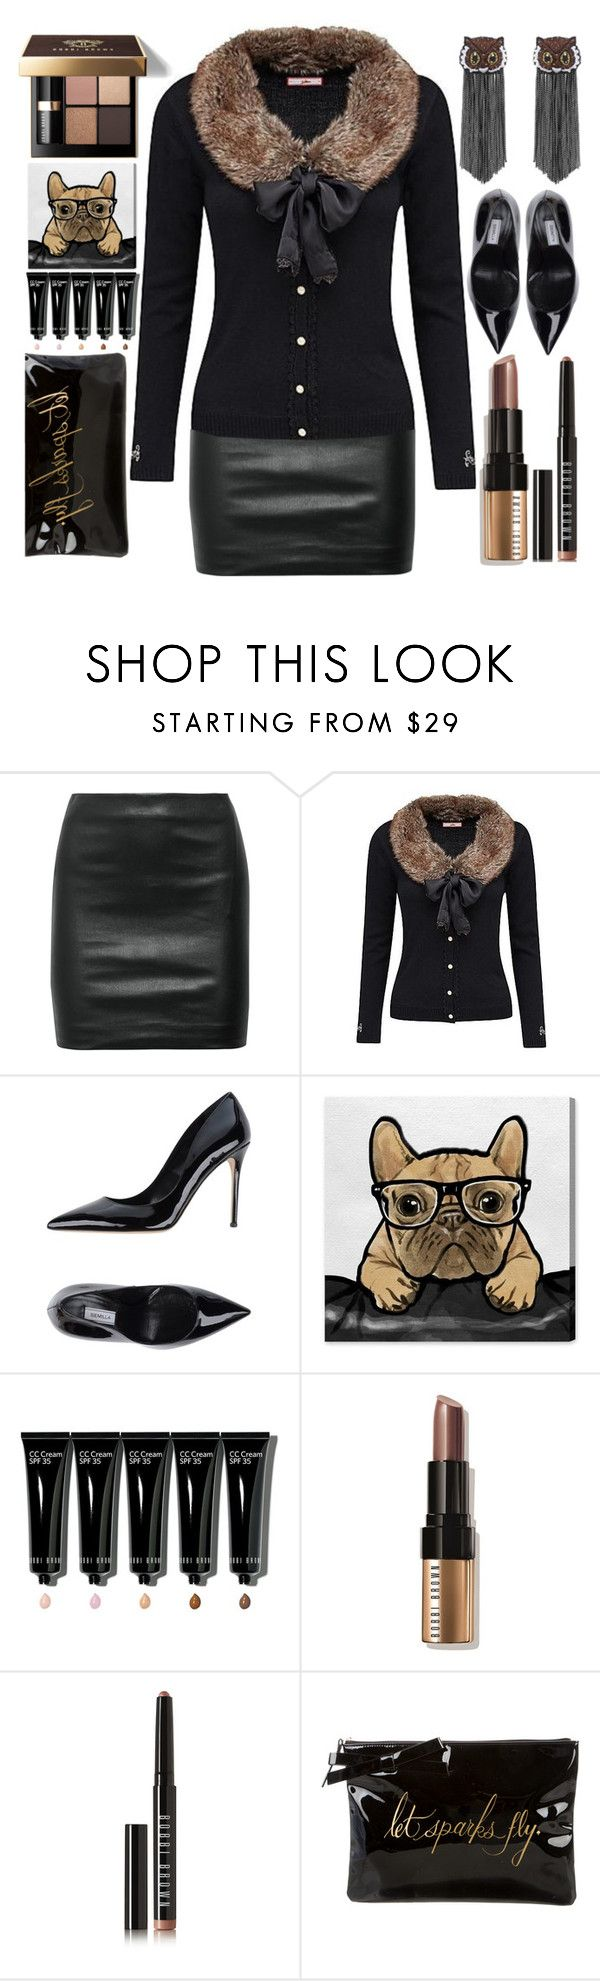 """""""Kiss and Hug"""" by grozdana-v ❤ liked on Polyvore featuring The Row, Joe Browns, Bobbi Brown Cosmetics, Semilla, Oliver Gal Artist Co., Kate Spade and Forest of Chintz"""